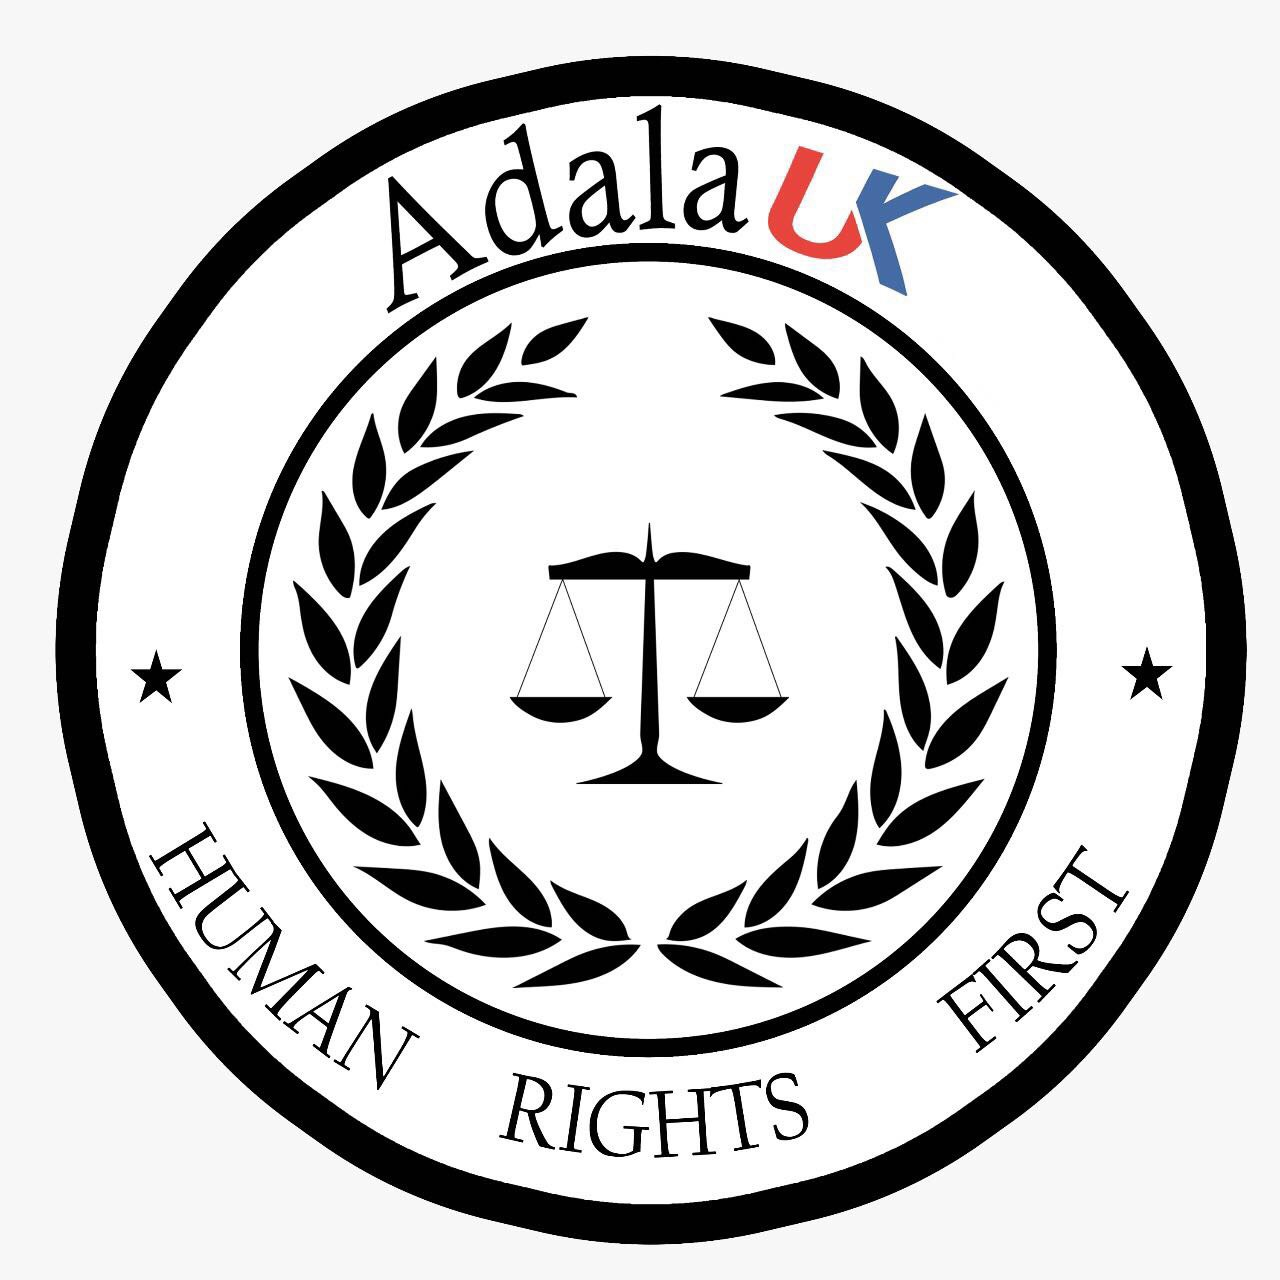 Adala UK Human Rights for Western Sahara